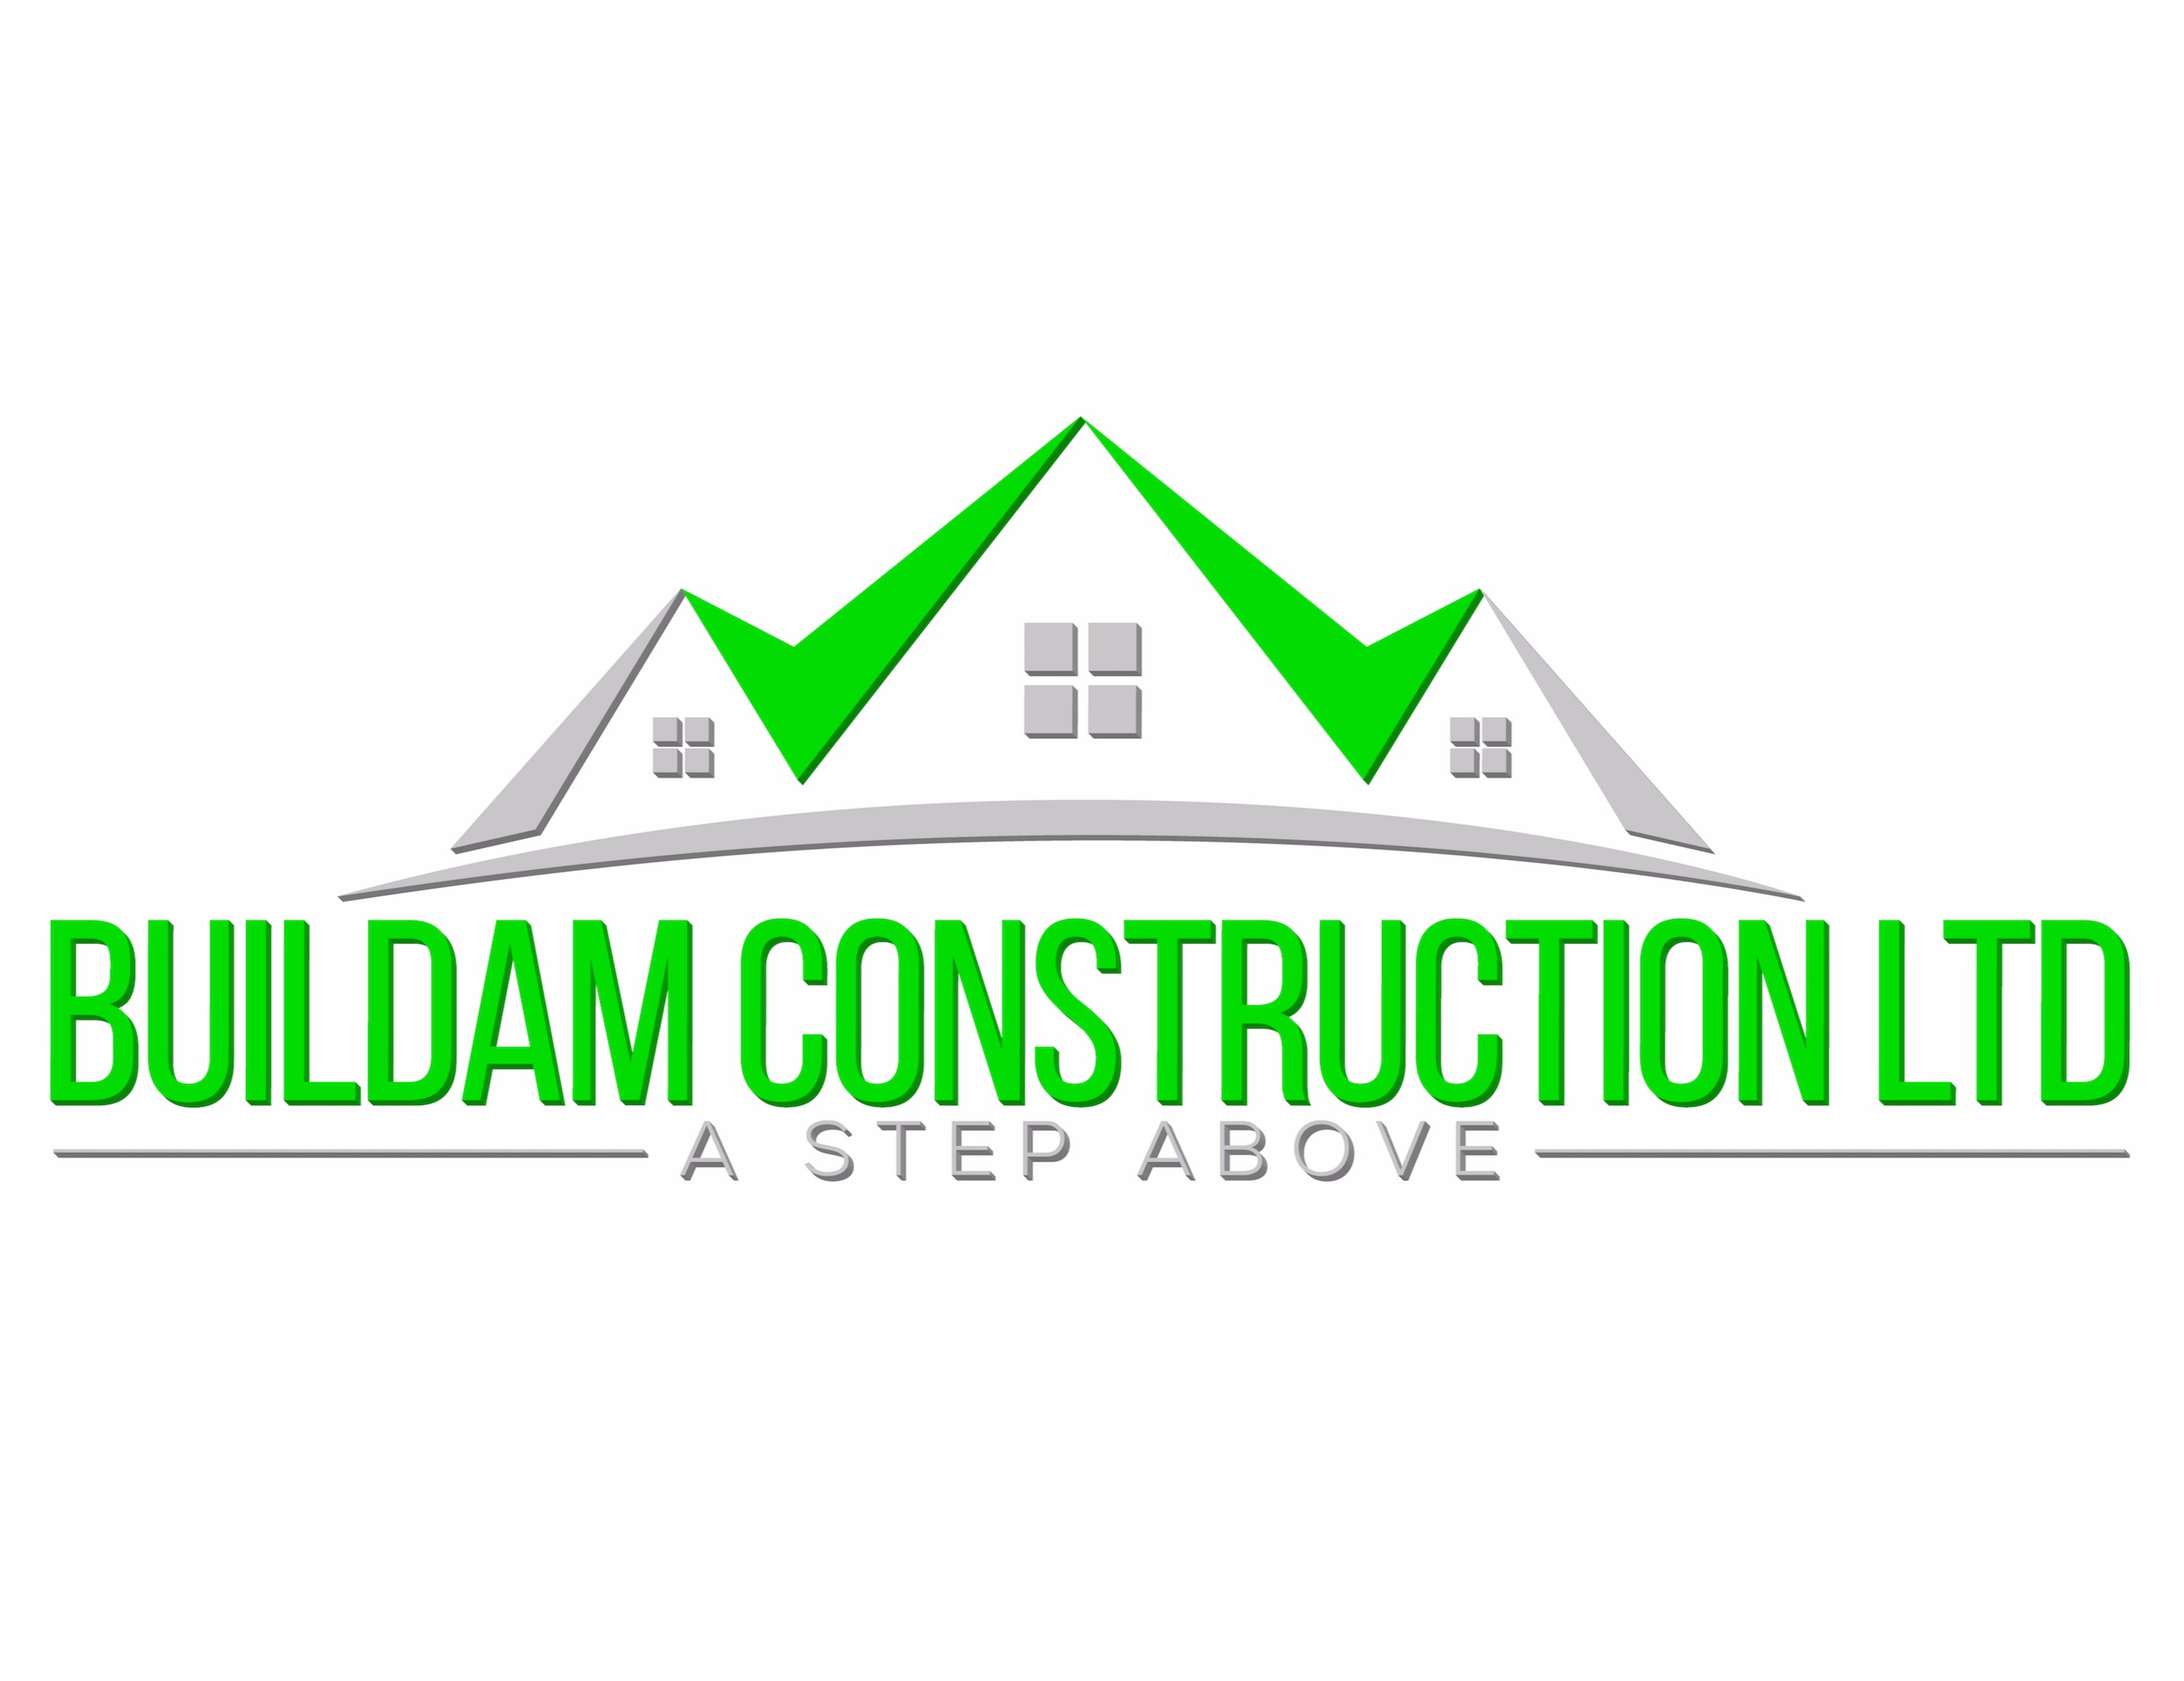 Buildam Construction Limited